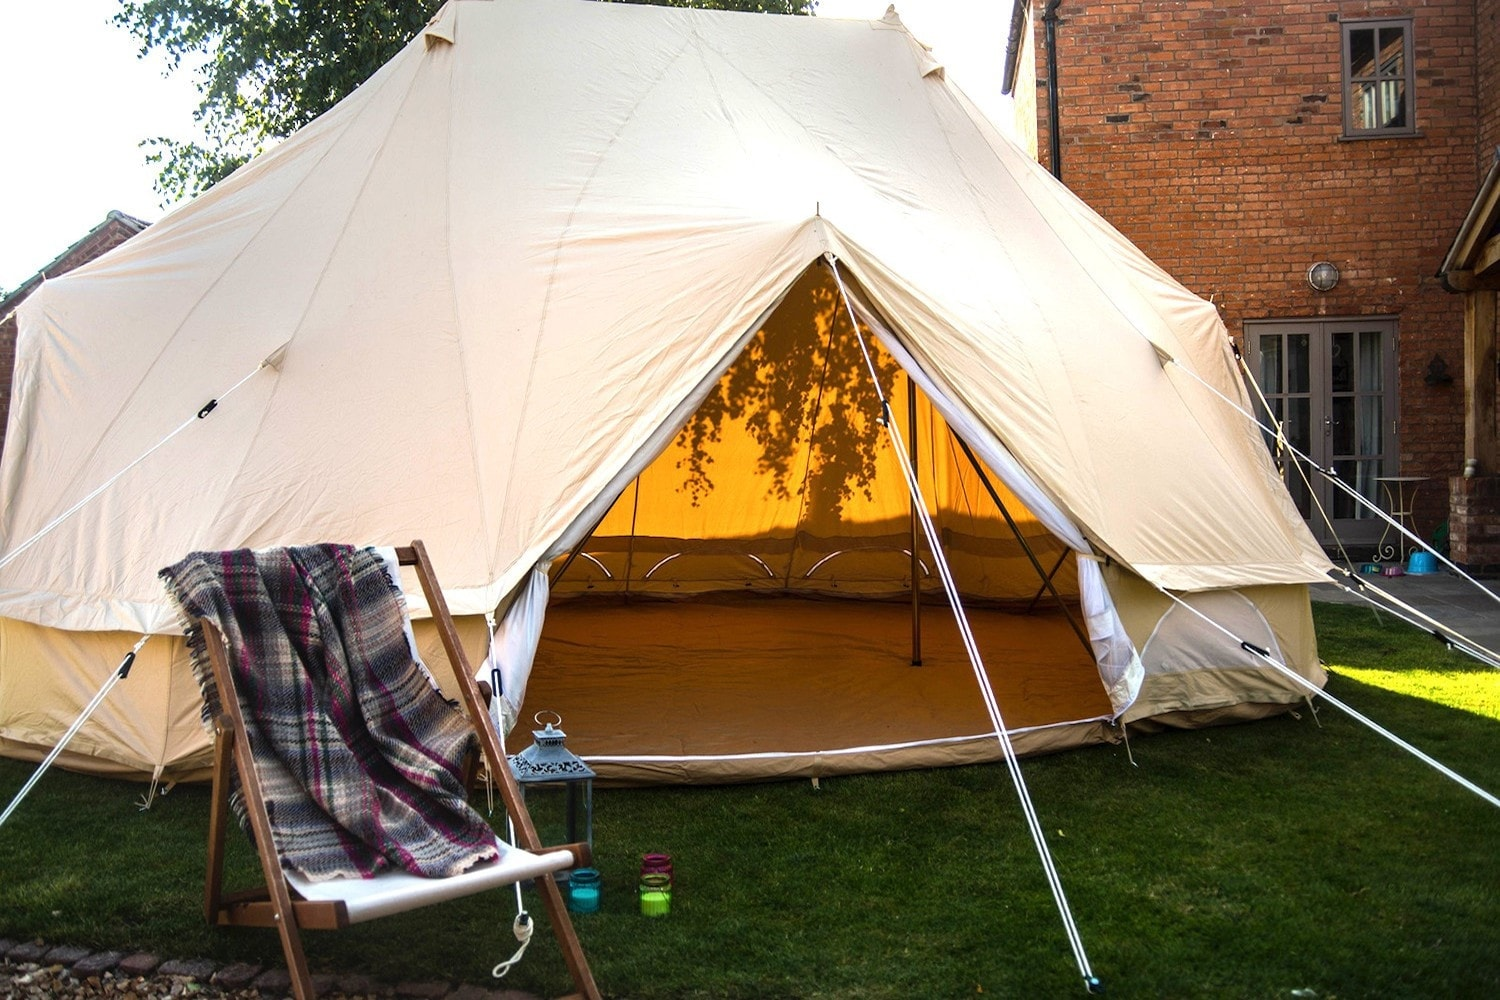 NOT TENT Large Canvas Bell Tent Awning 400 x 240-1 pole By Bell Tent Boutique